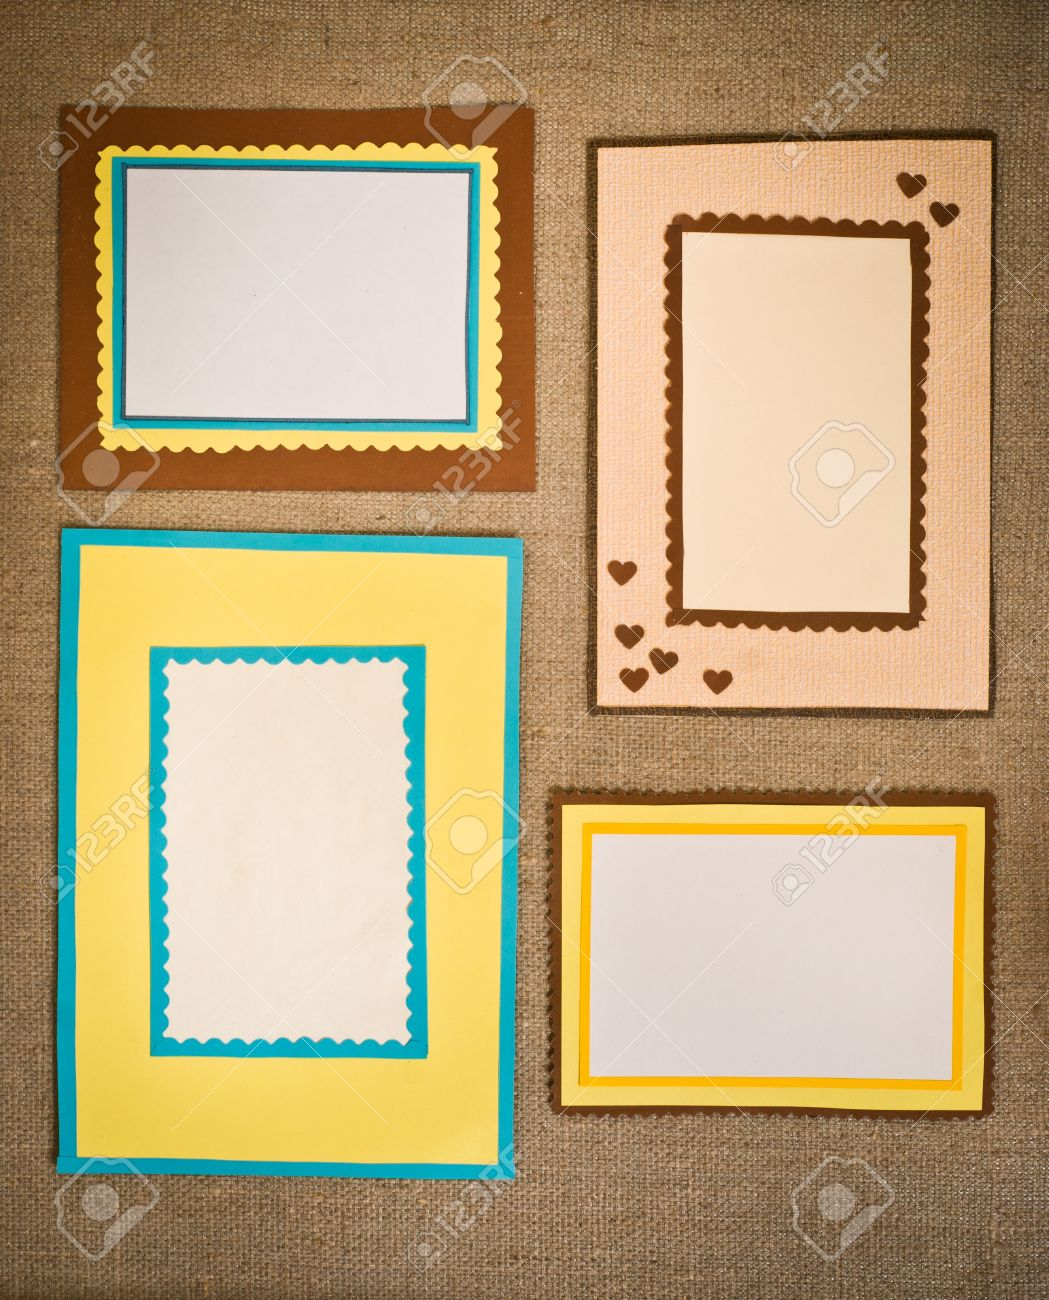 the four frames of colored paper stock photo picture and royalty